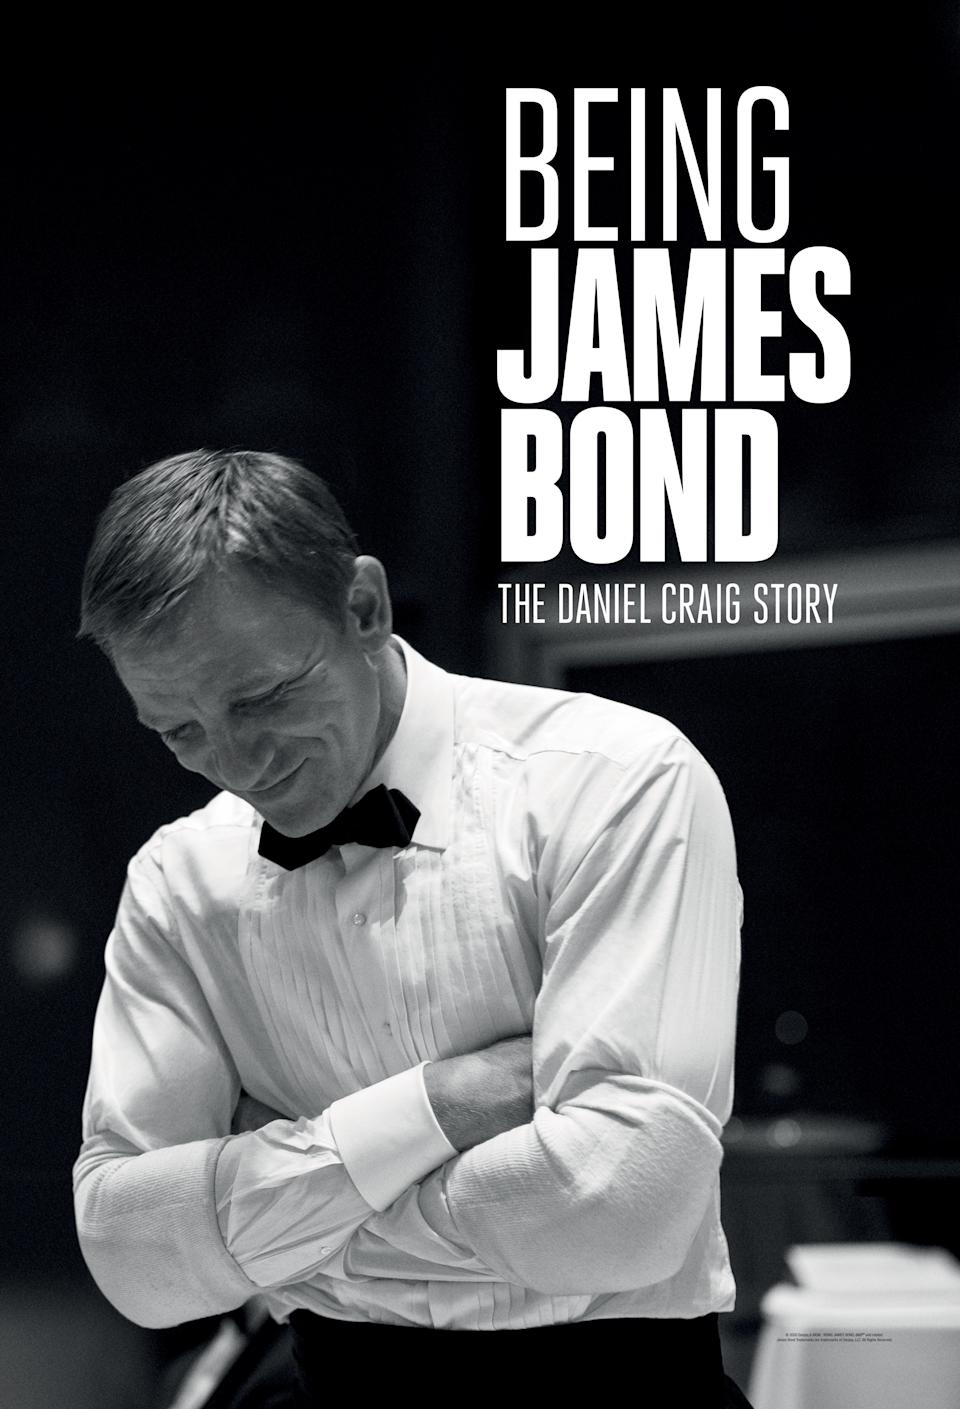 Being James Bond is an Apple TV exclusive ahead of No Time To Die (Apple)